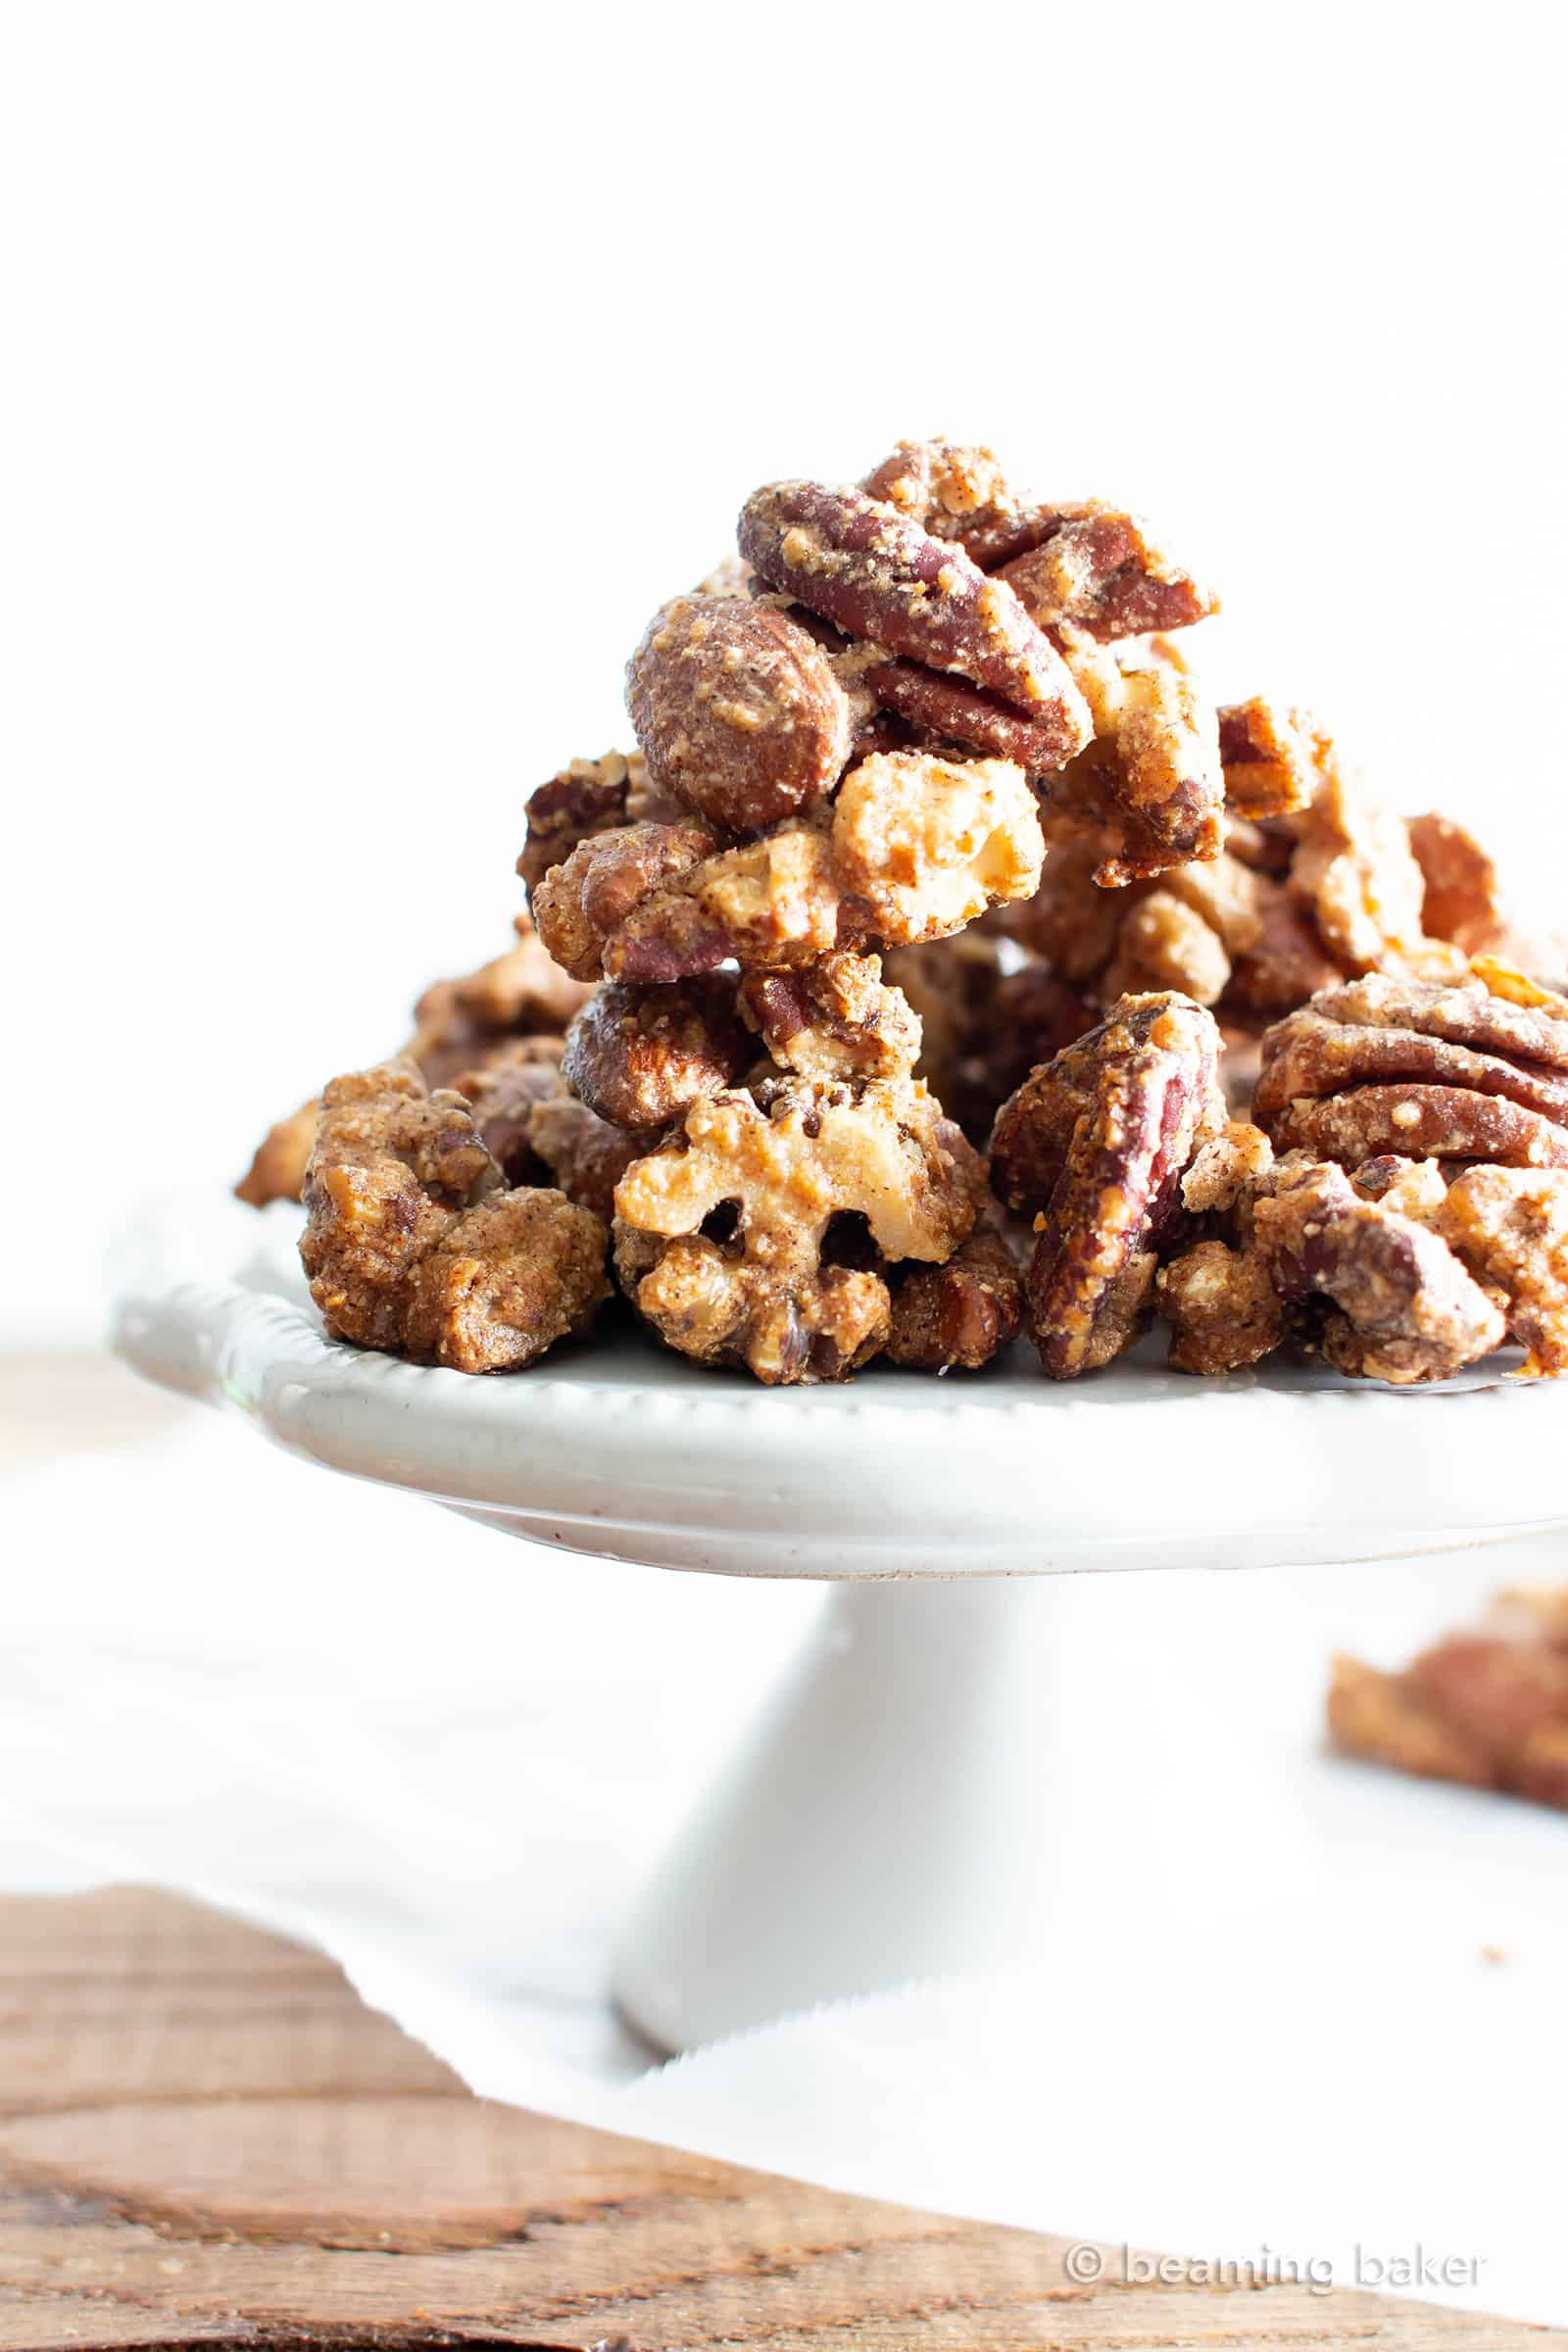 Sweet 'n Salty Nut Clusters Recipe (V, GF): an easy recipe for crunchy nut clusters, lightly glazed and bursting with salty 'n sweet flavors. Made with healthy ingredients. #ProteinRich #Nuts #VeganSnacks #Christmas #Fall #DairyFree #GlutenFree #Vegan | Recipe at BeamingBaker.com